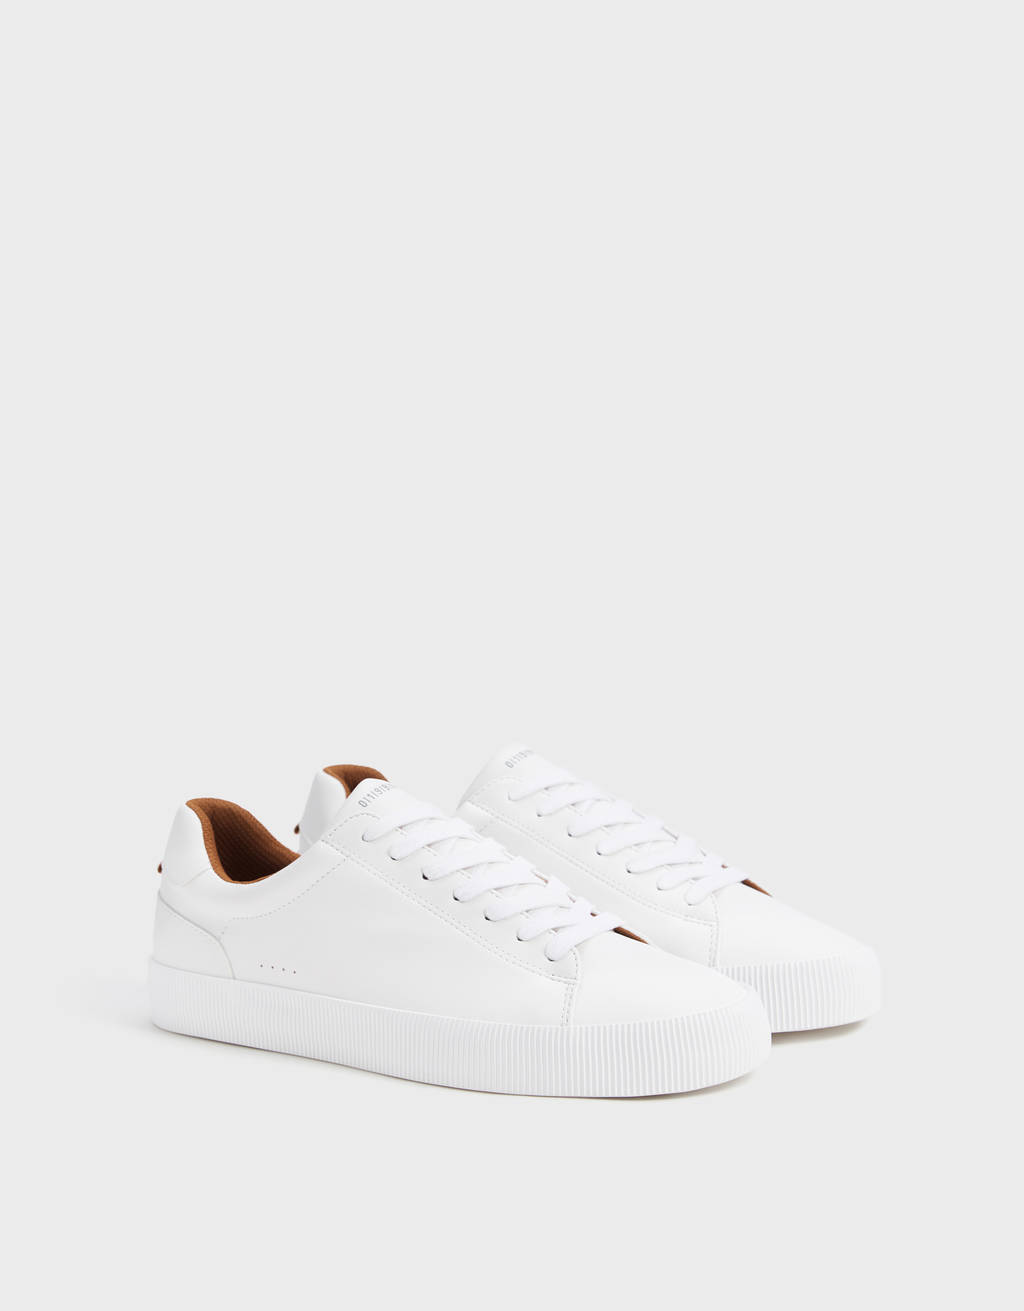 buy popular 0fa41 0d060 Herrenschuhe – Herbst 2019 | Bershka